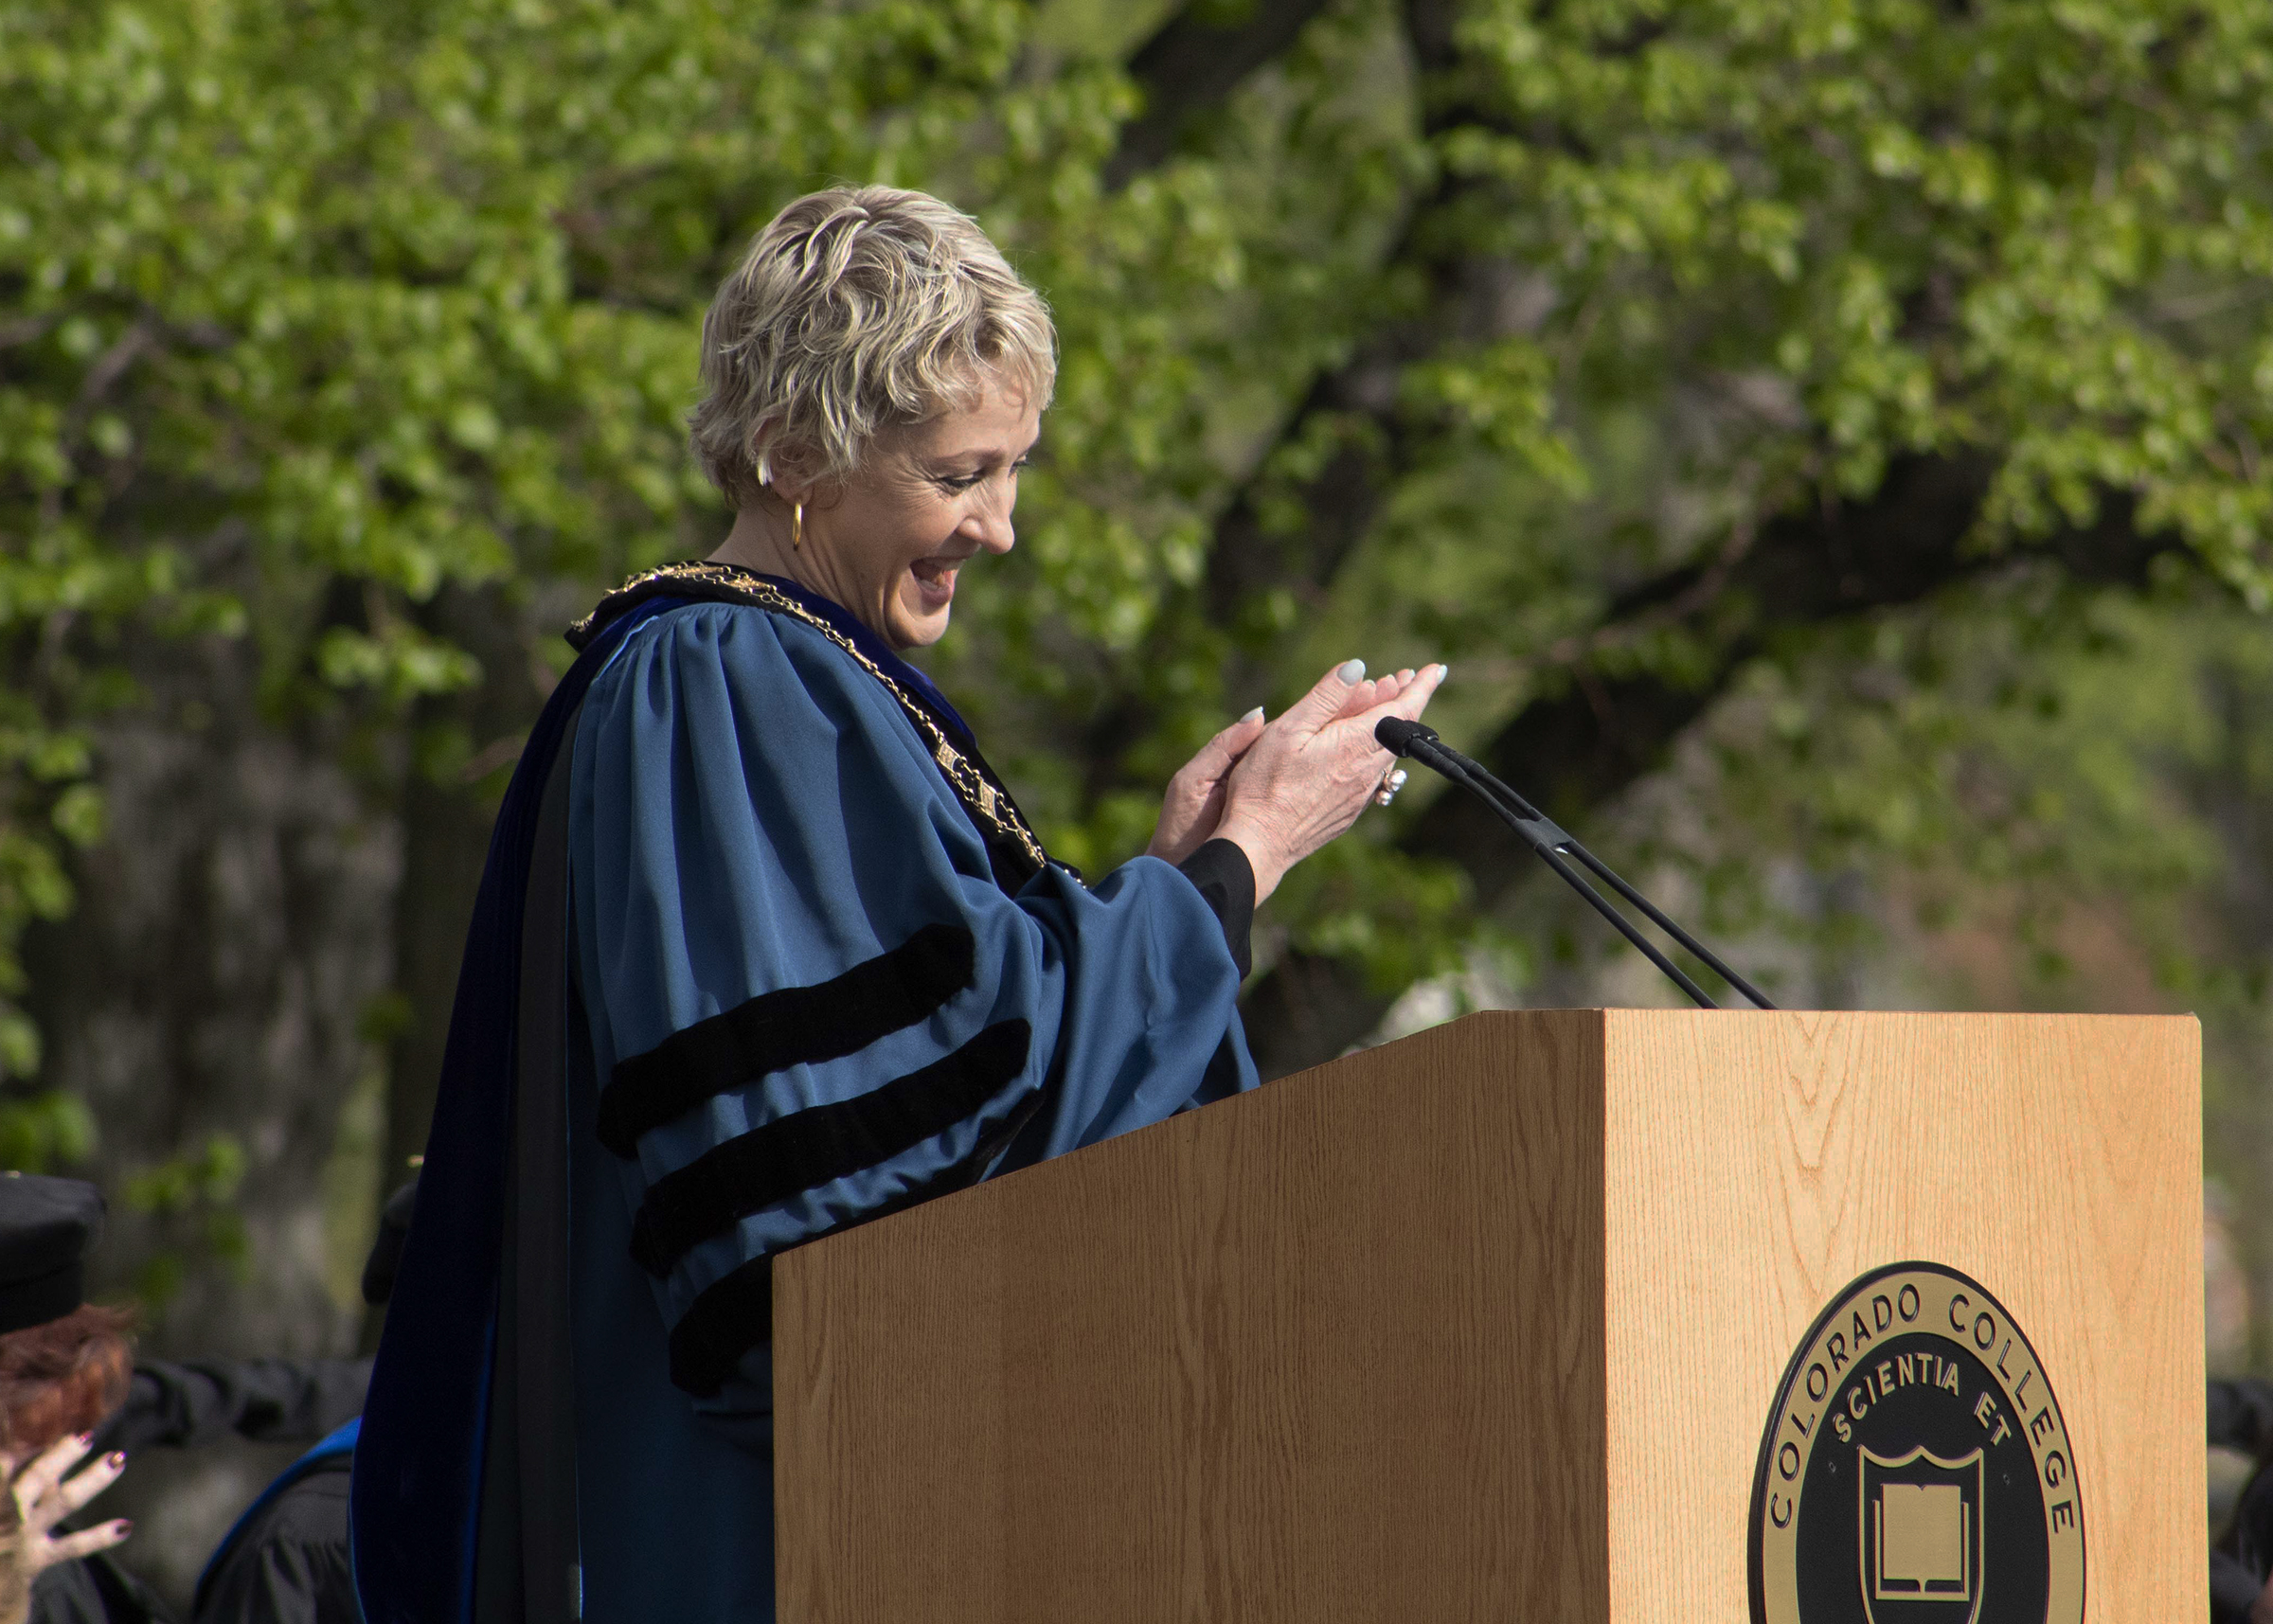 Jill Tiefenthaler speaks during the 2019 Commencement Ceremony at Colorado College.